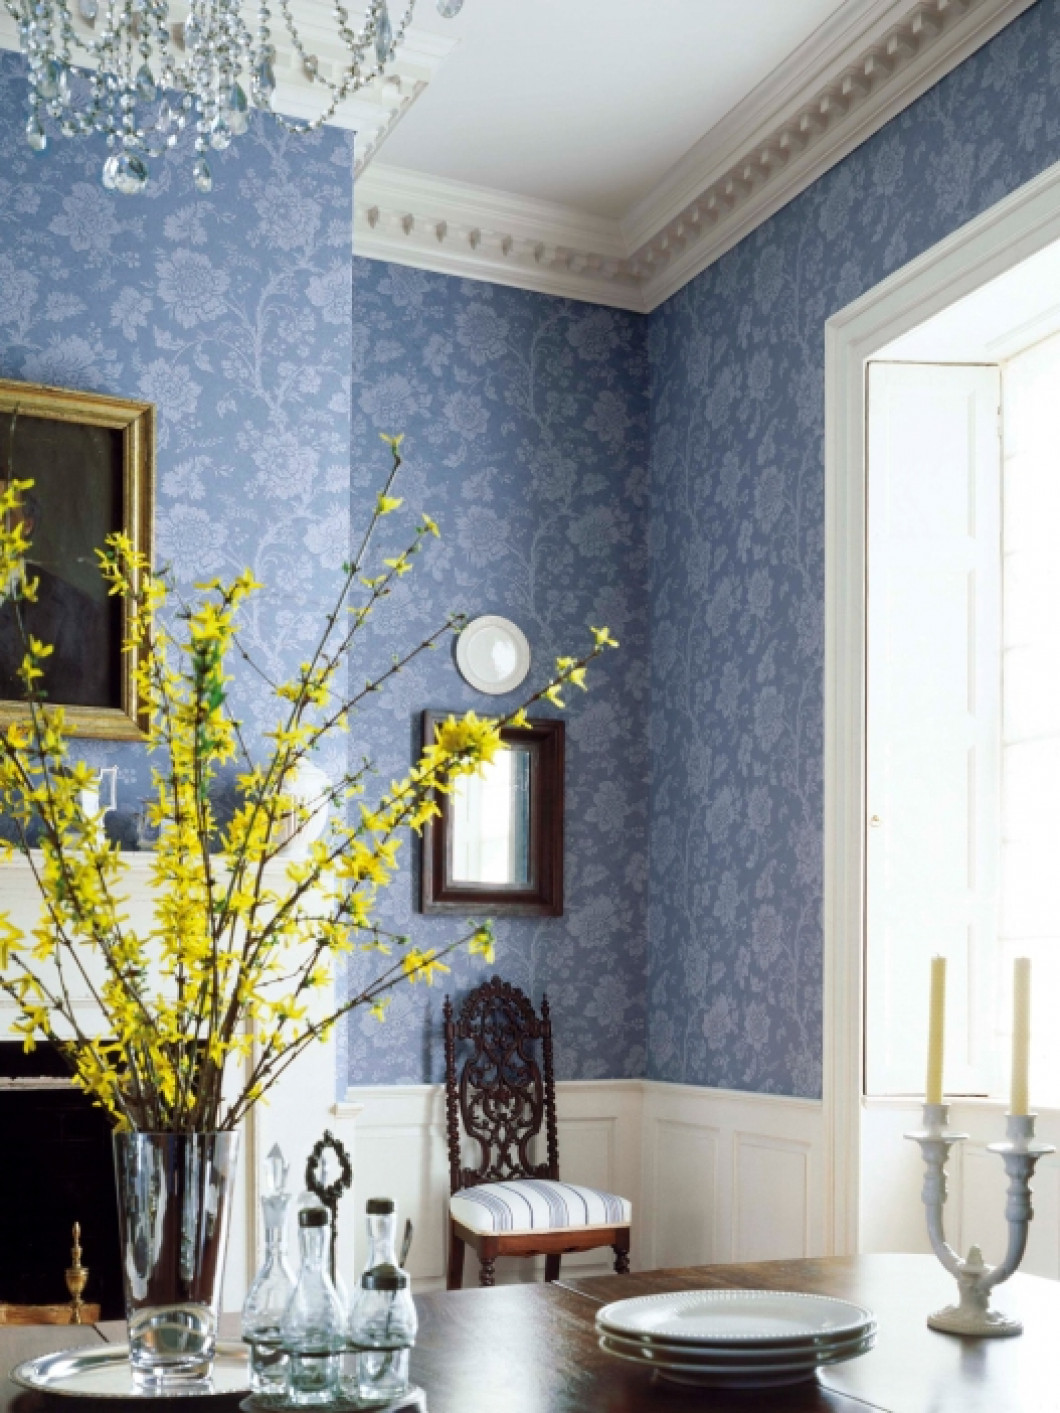 Searching For A Unique Wallpaper Design To Spruce Up Your Home